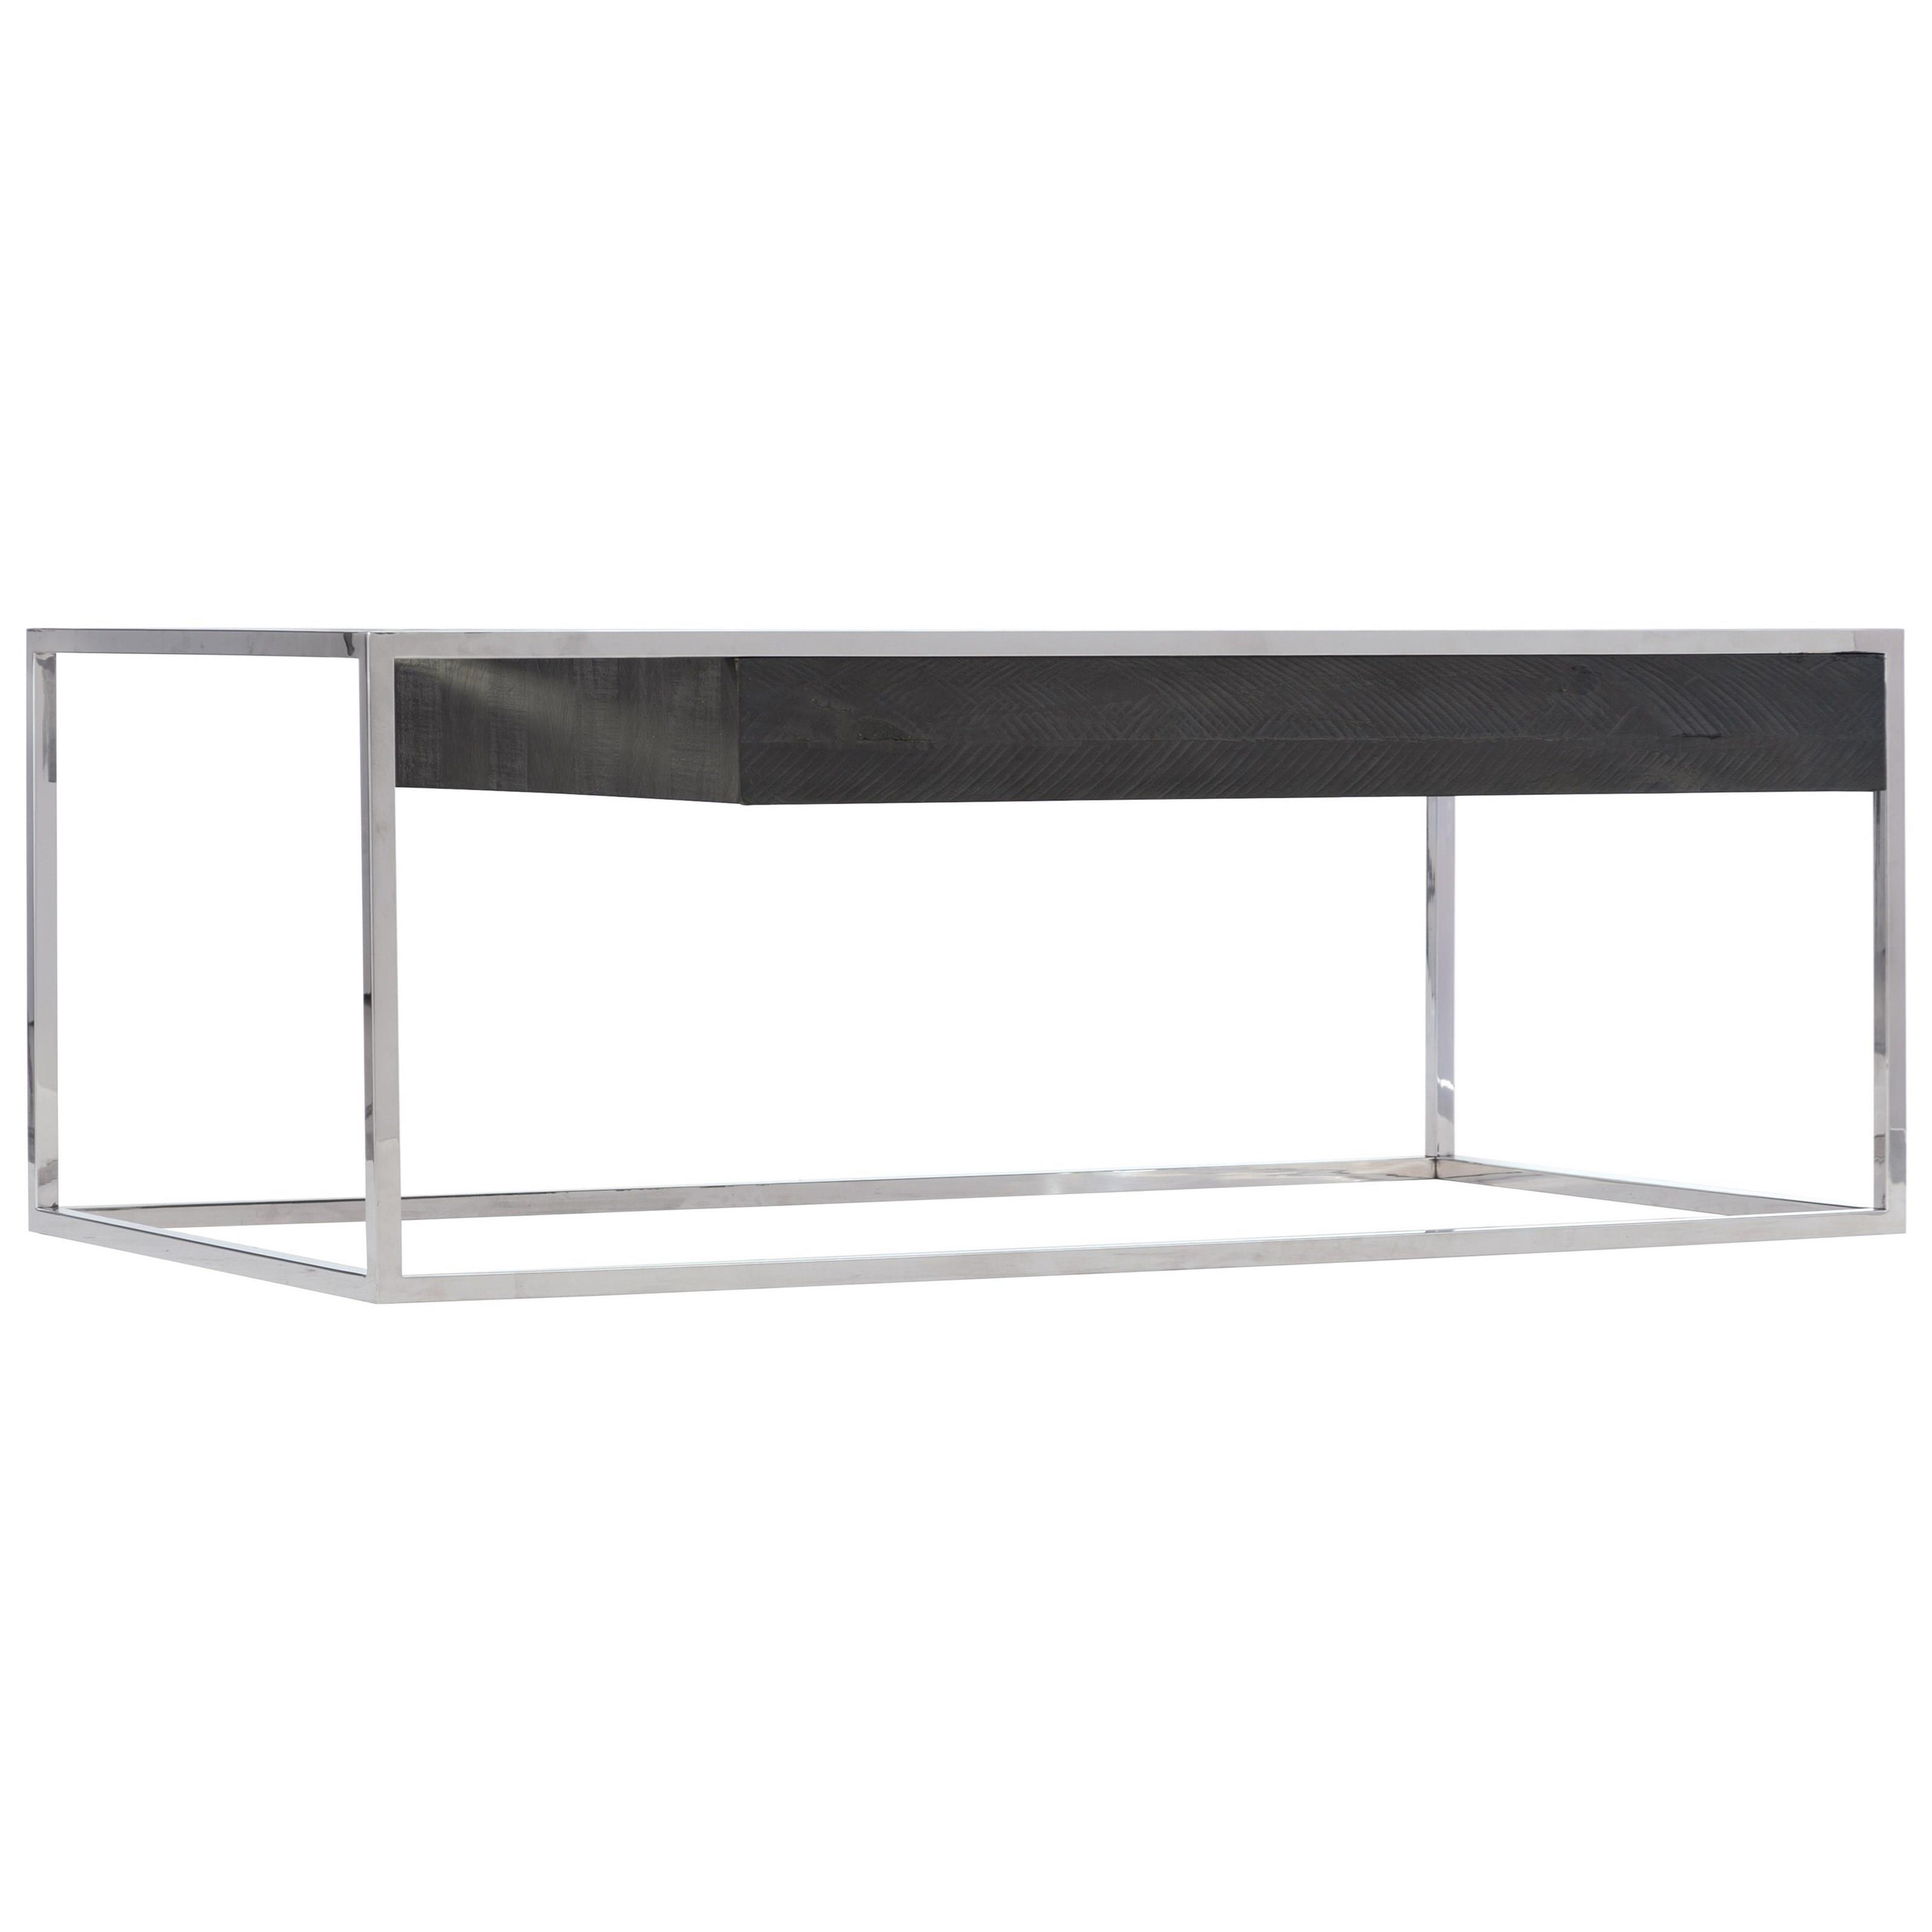 Loft - Logan Square Beacon Cocktail Table by Bernhardt at Baer's Furniture